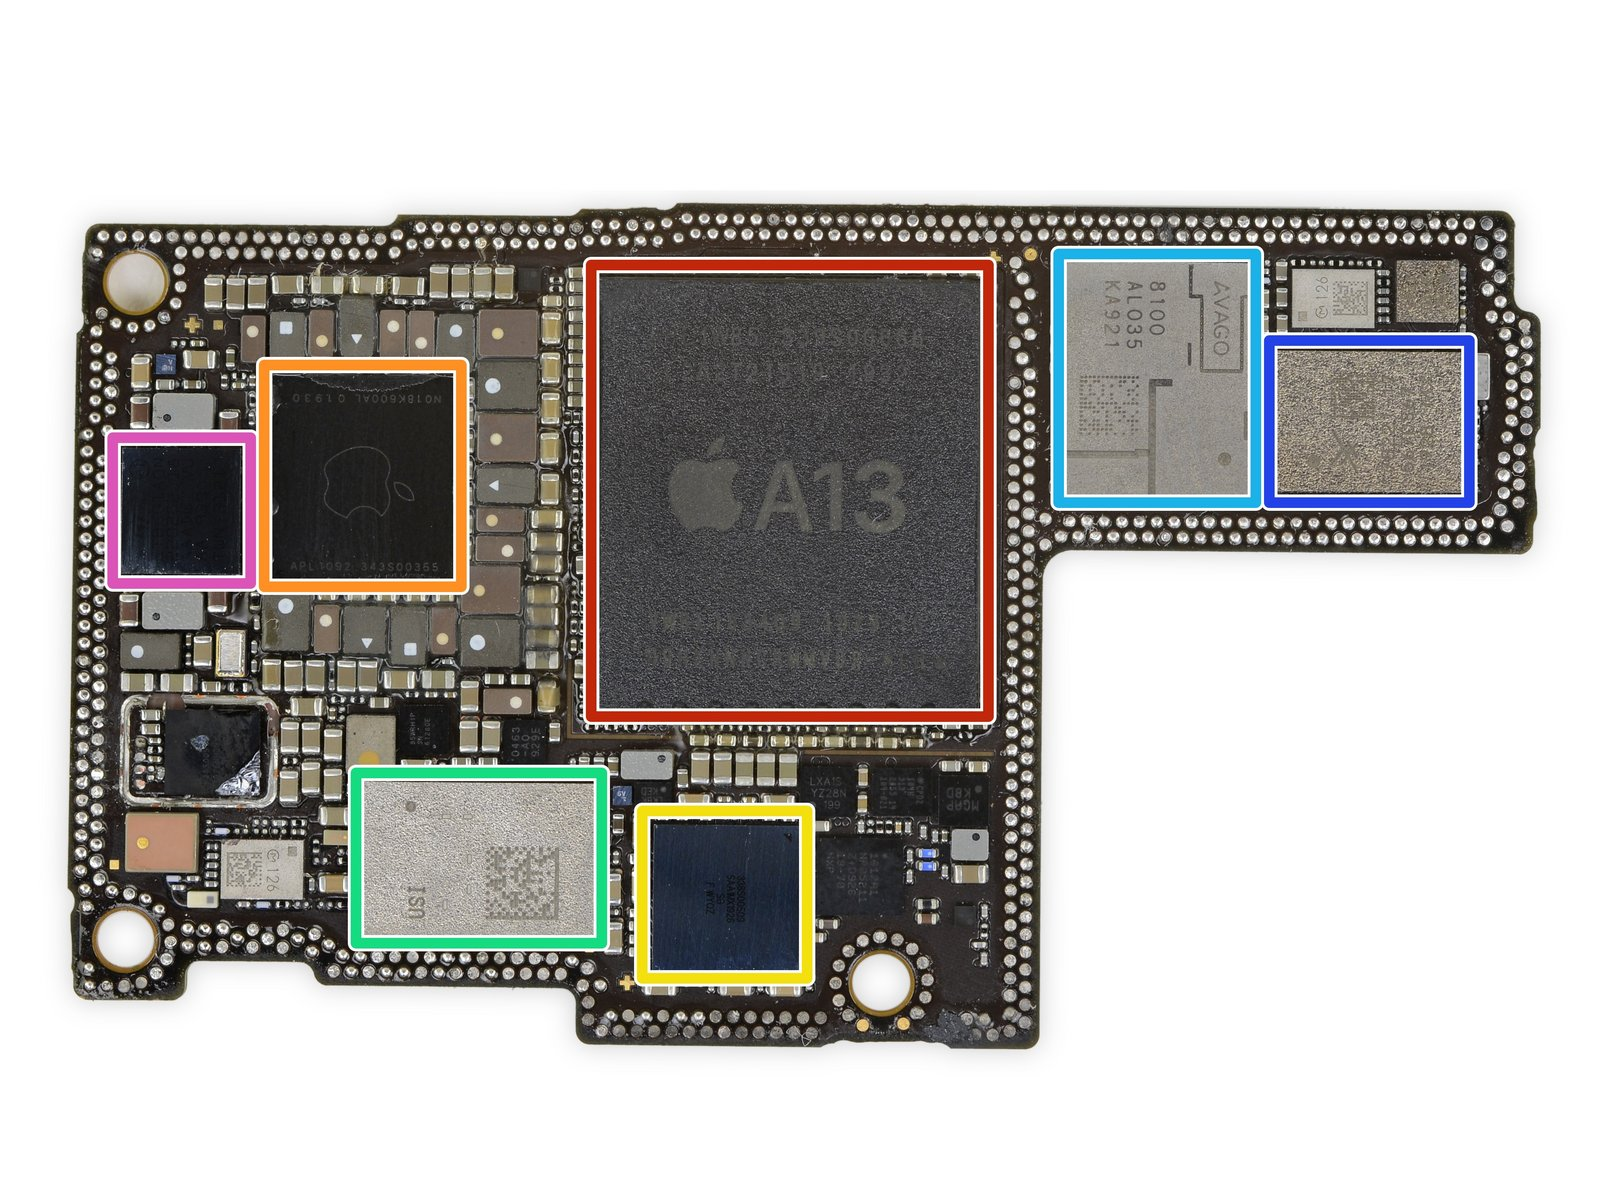 Skyworks chip on iPhone board